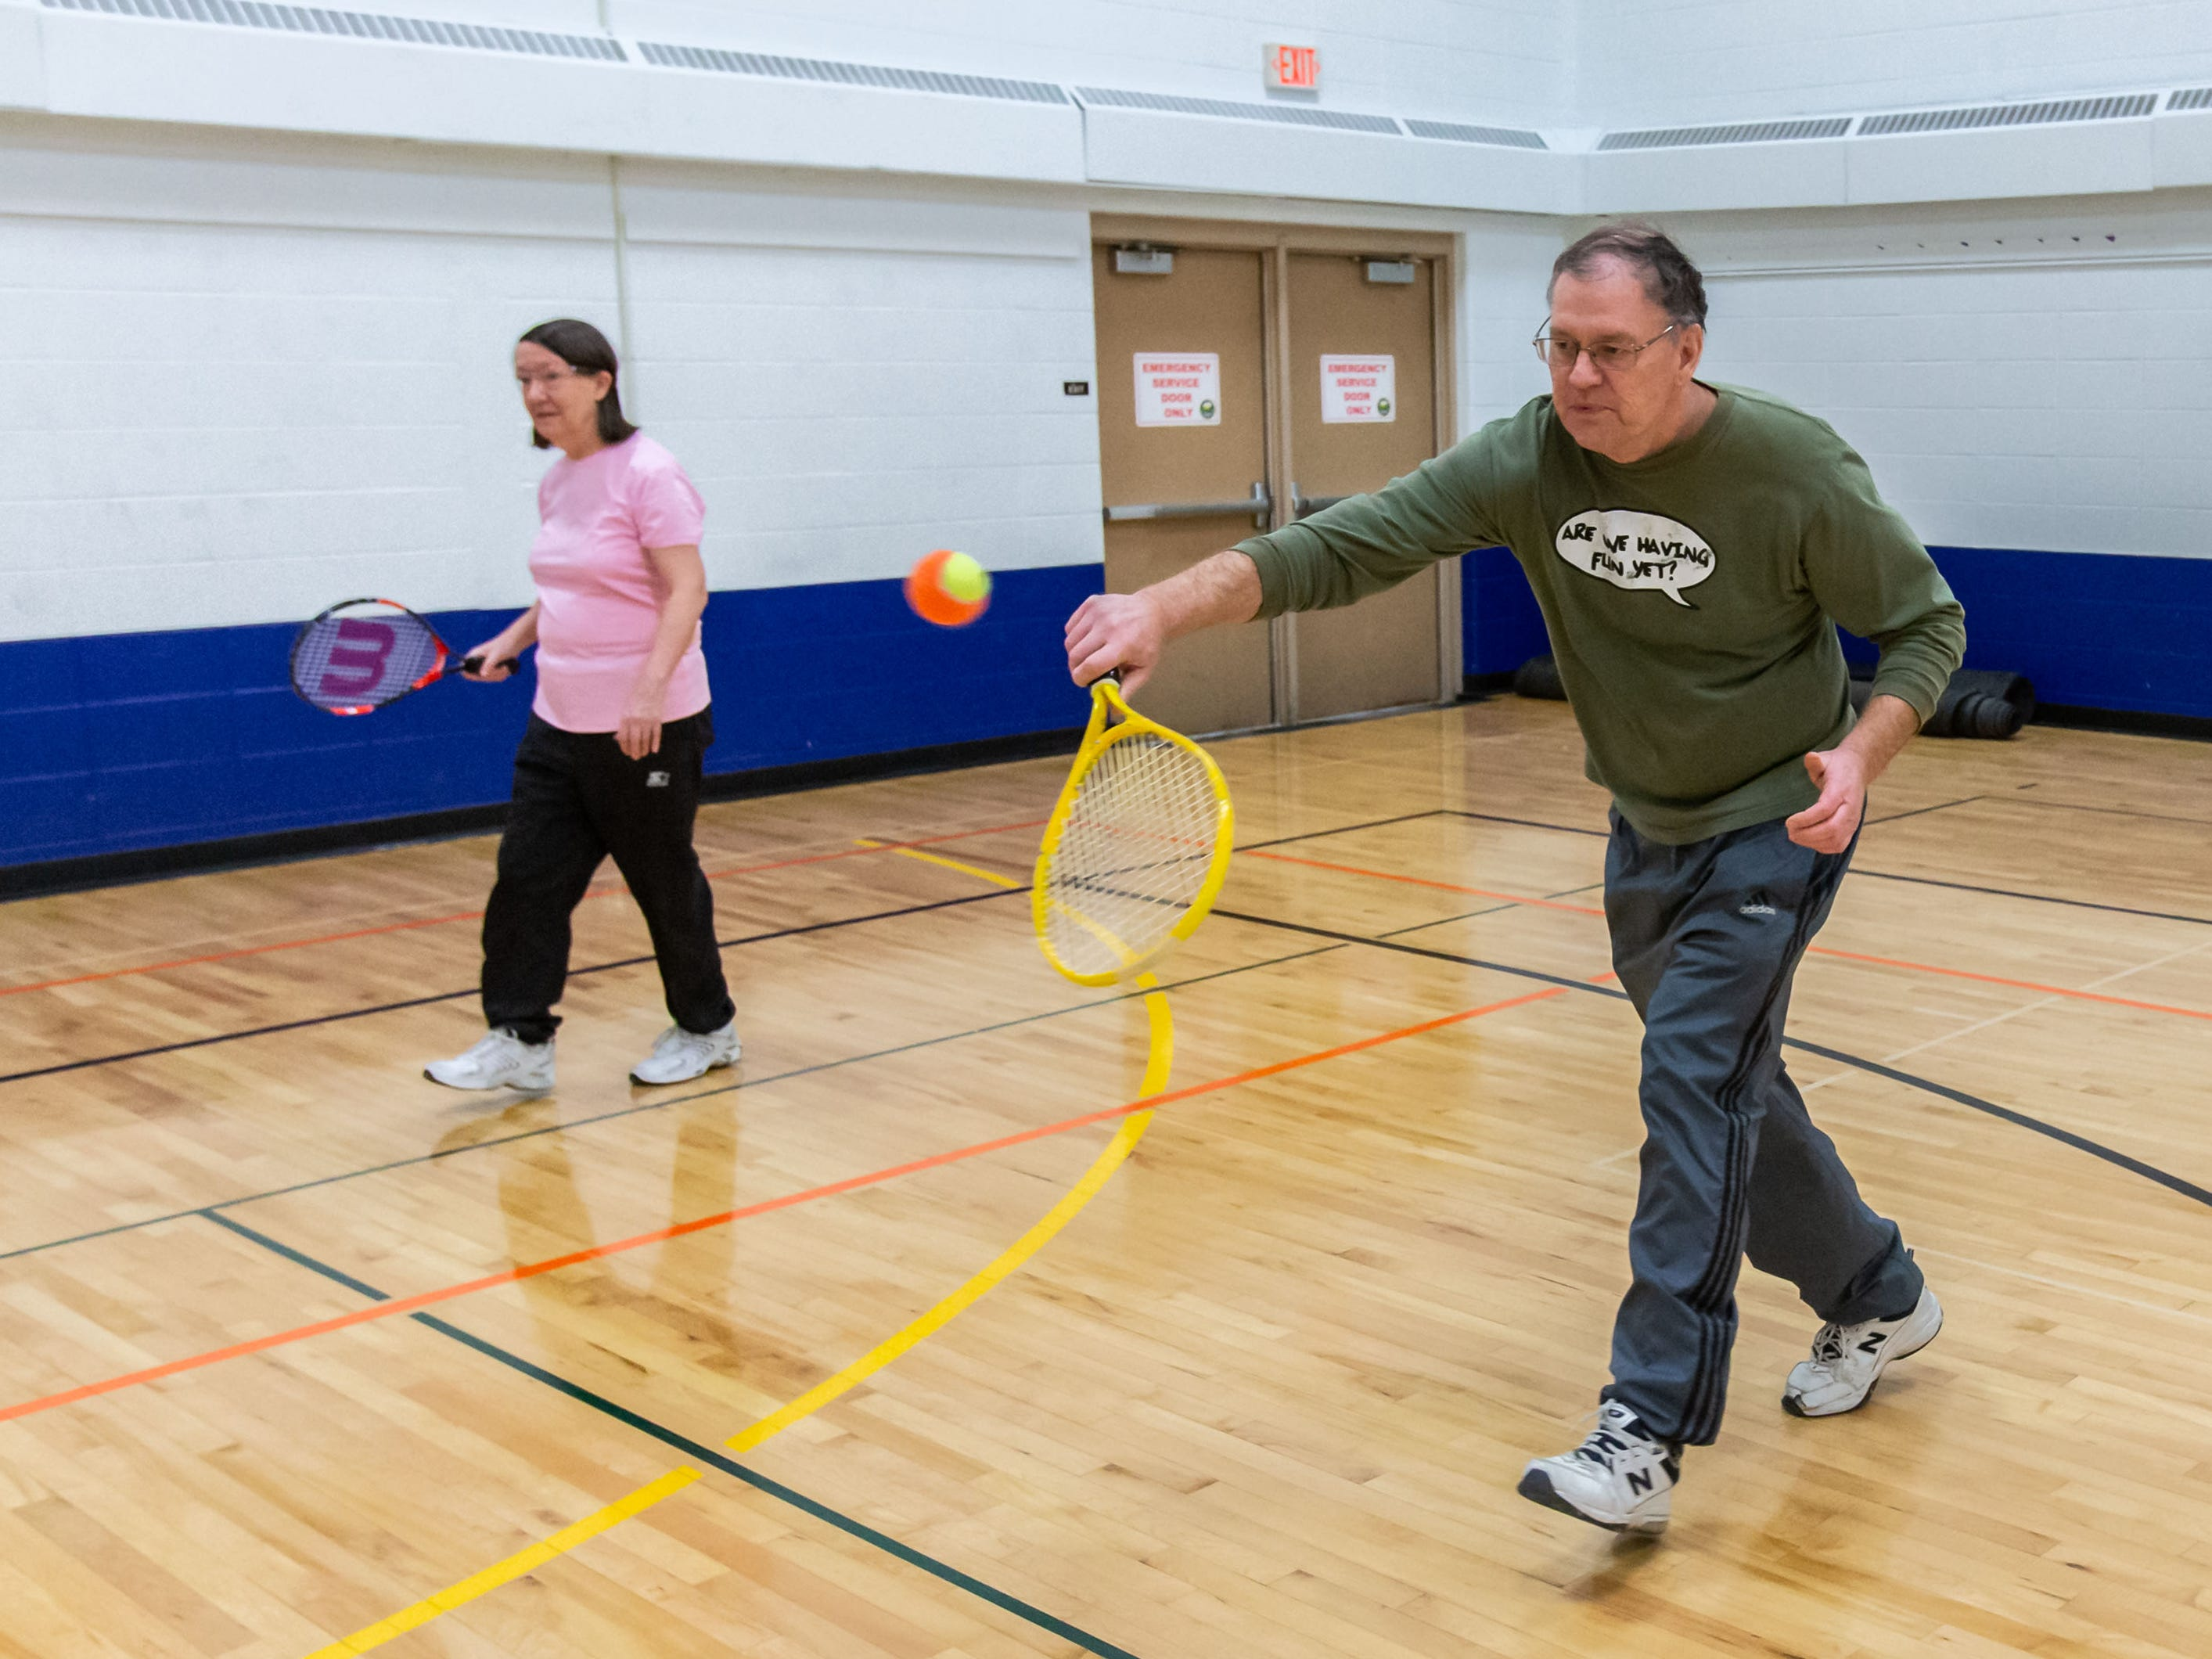 Russ and Jill Hager of Muskego play a game of progressive tennis during the JanBoree family carnival at the Schuetze Recreation Center in Waukesha on Sunday, Jan. 27, 2019. The carnival featured arts and crafts, games, theatrical performances and more.